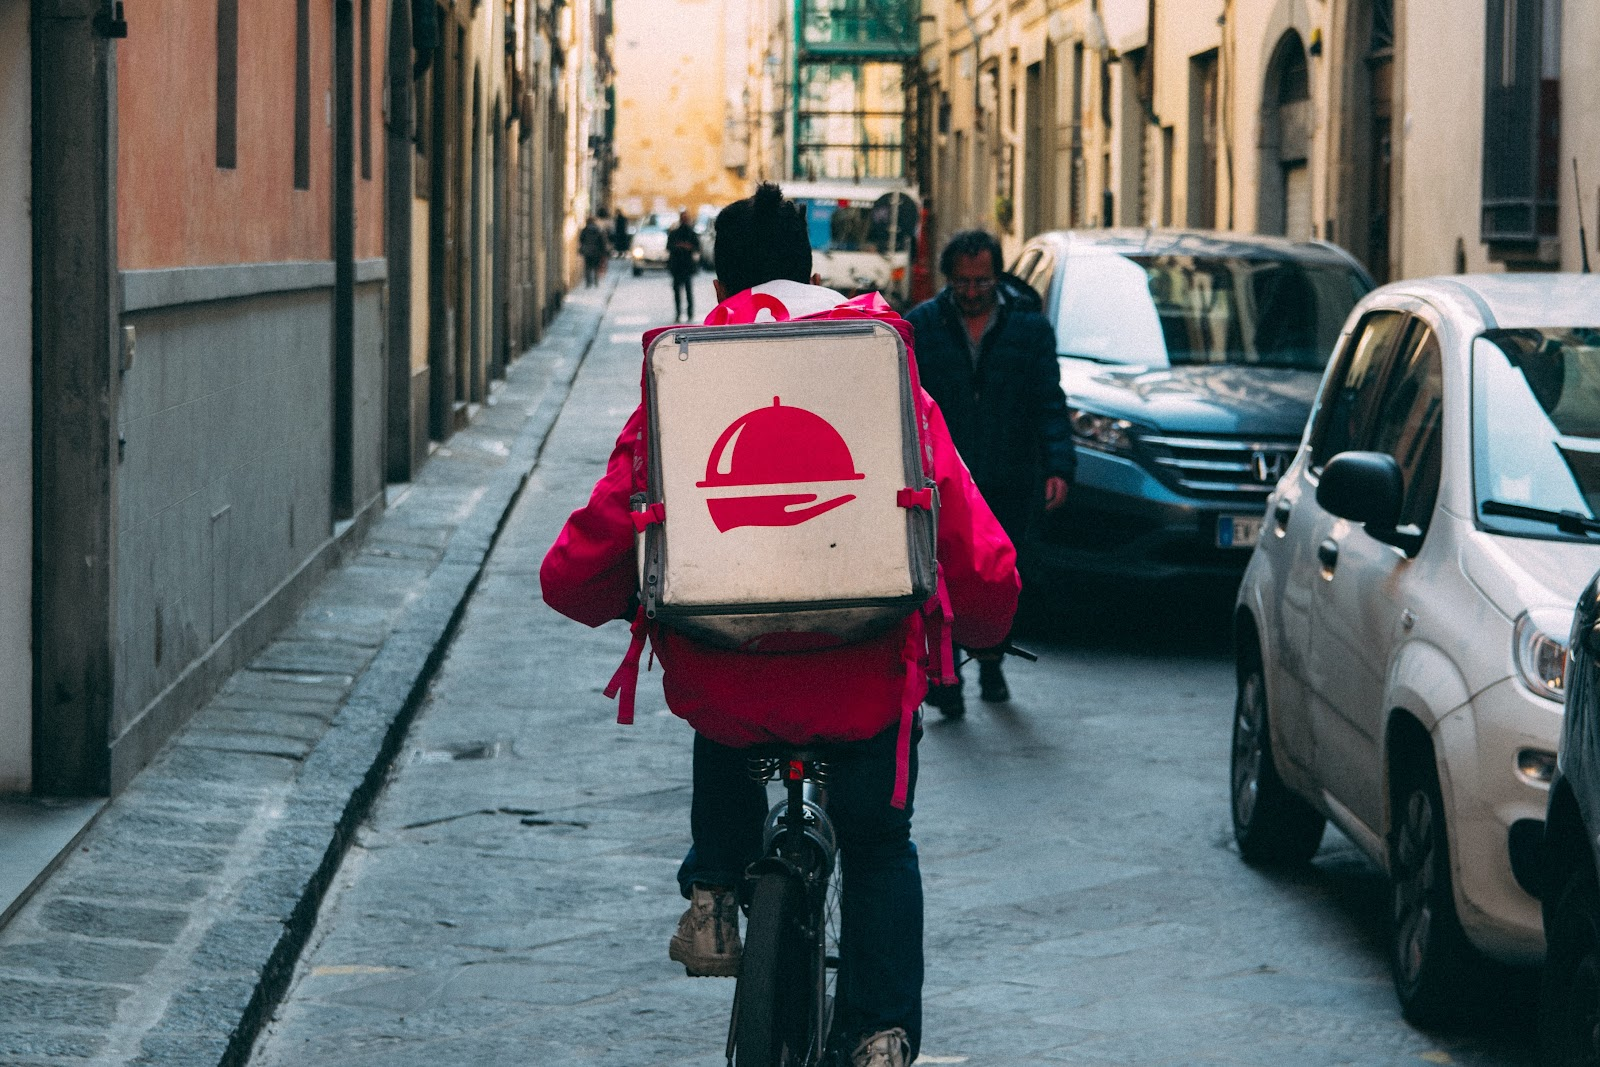 bike food delivery courier options